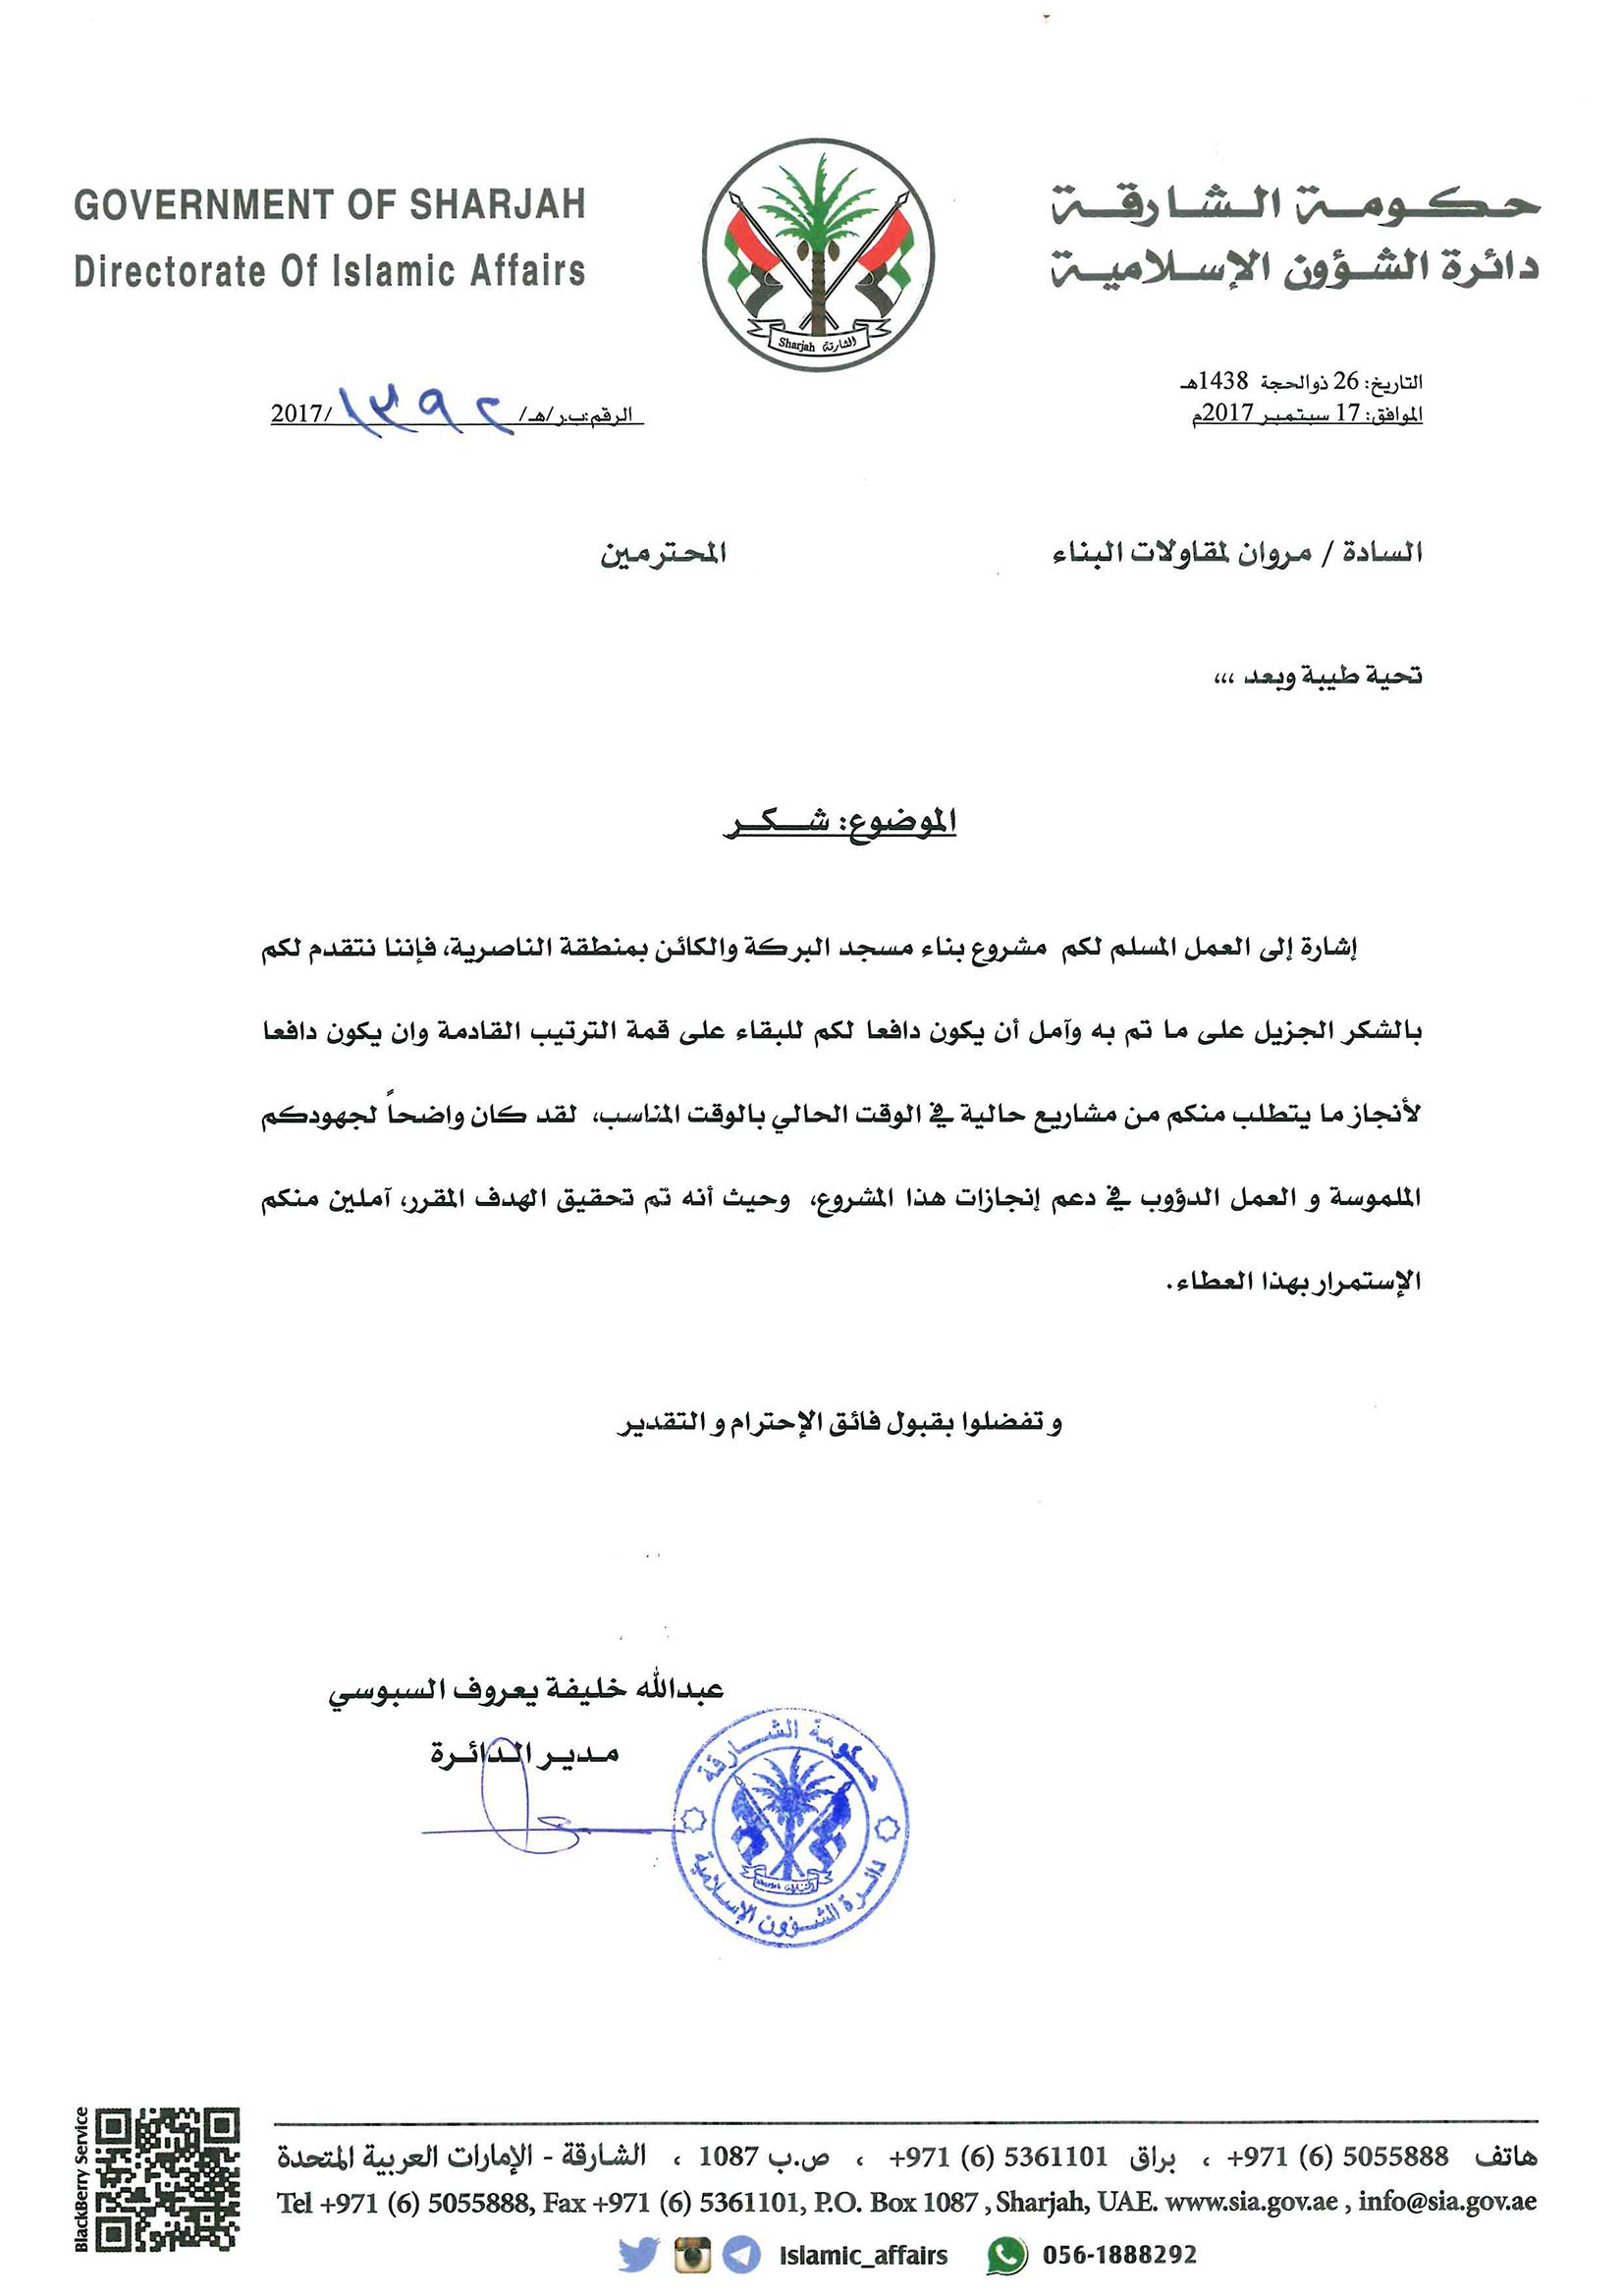 Letter of Appreciation from Directorate of Islamic Affairs , Government of Sharjah